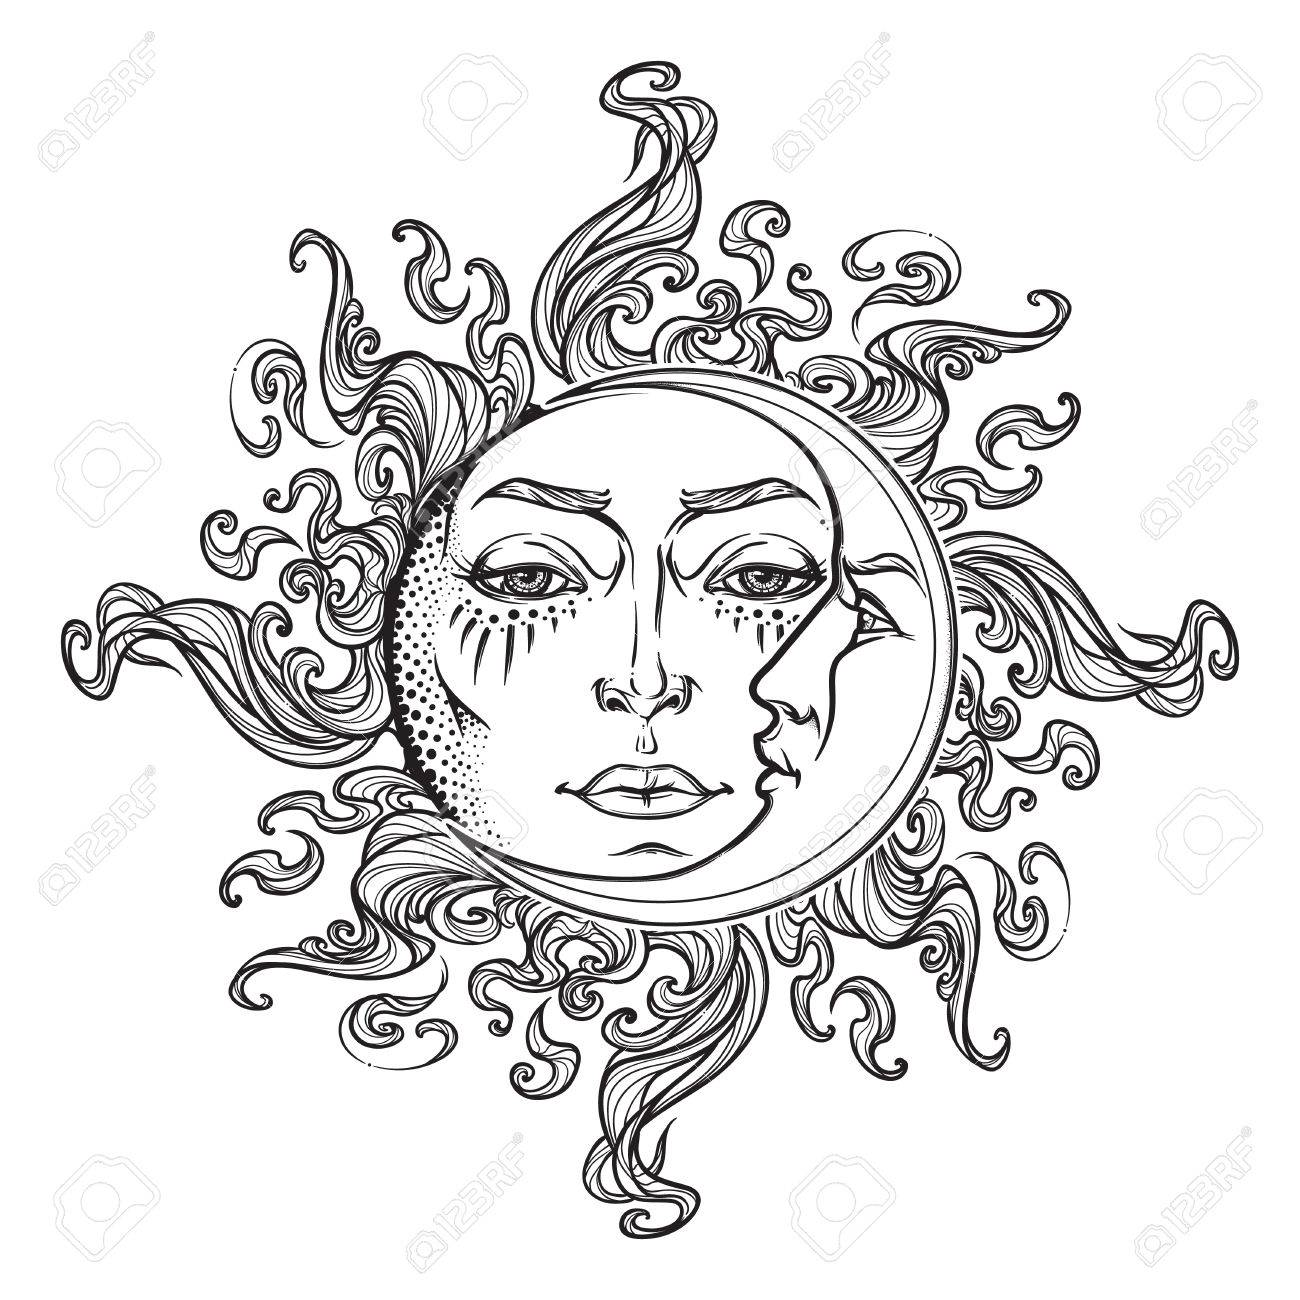 1300x1300 Fairytale Style Hand Drawn Sun And Crescent Moon With A Human